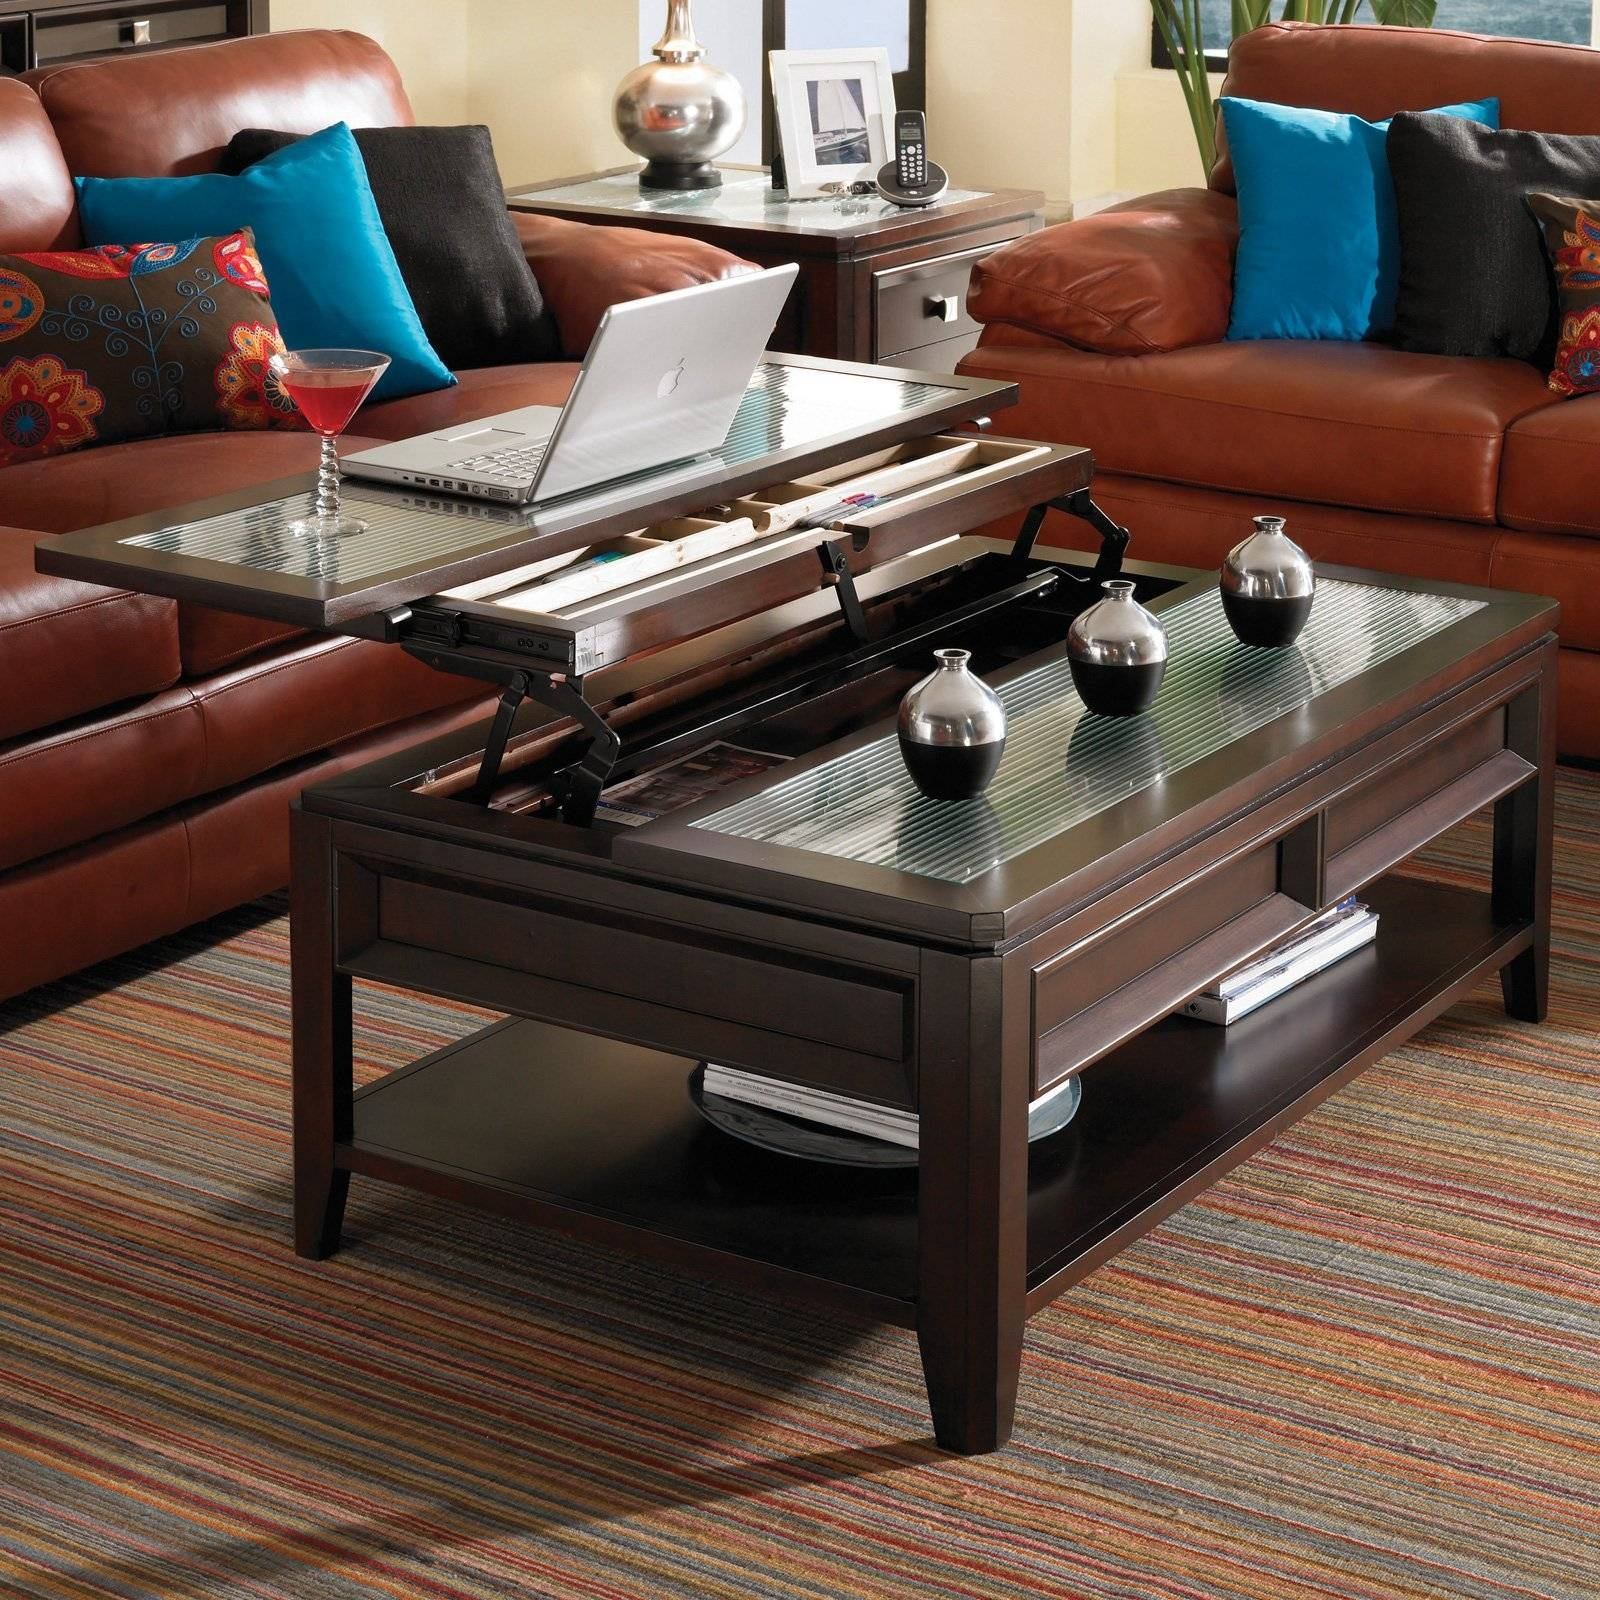 Black Coffee Table With Lift Up Top | Coffee Tables Decoration with Lifting Coffee Tables (Image 4 of 30)